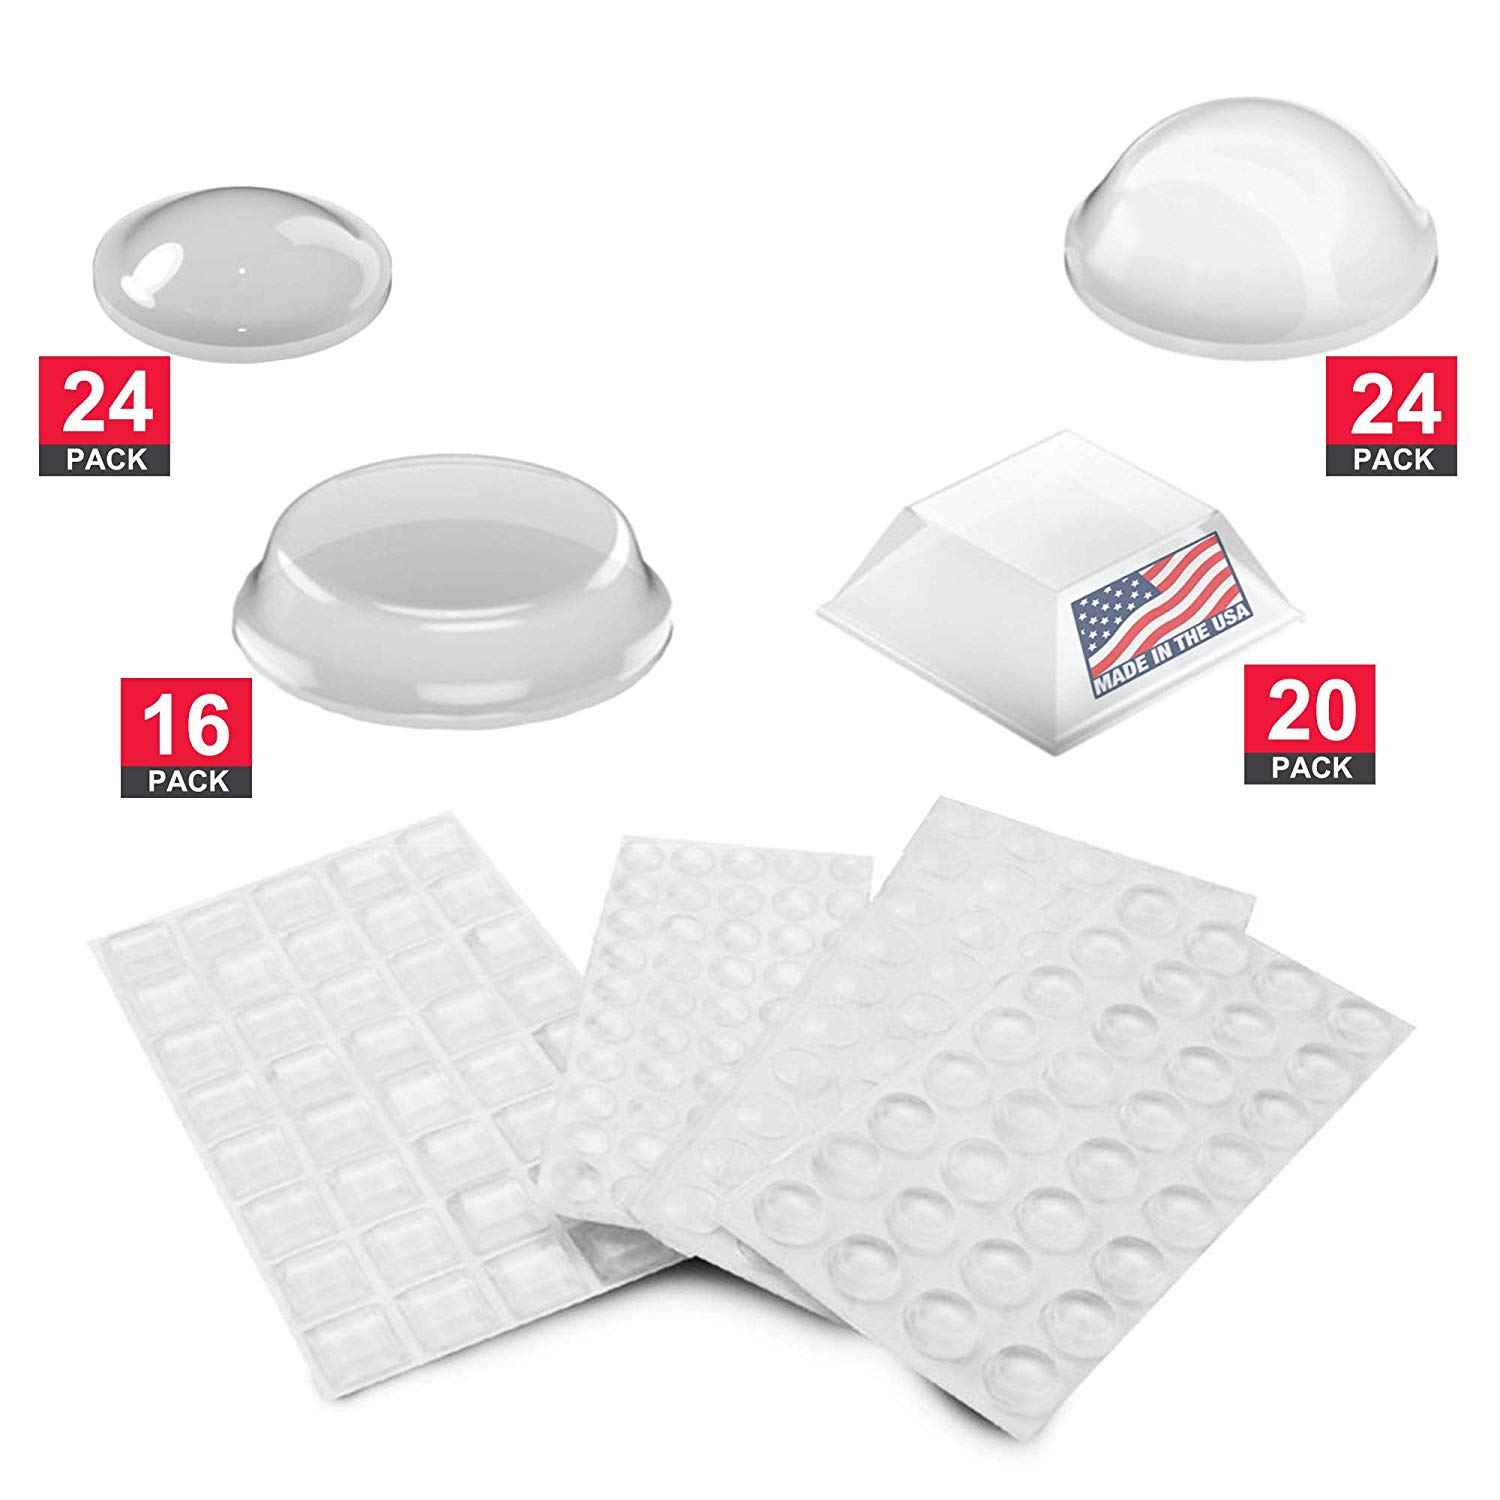 3M Self Adhesive Rubber Bumper Pads : Sound Dampening and Non-Skid Feet for Small Electronic Device, Cabinet Doors, Drawers, Picture Frames, Cutting Boards, Clear, 84-PCs by Volarium